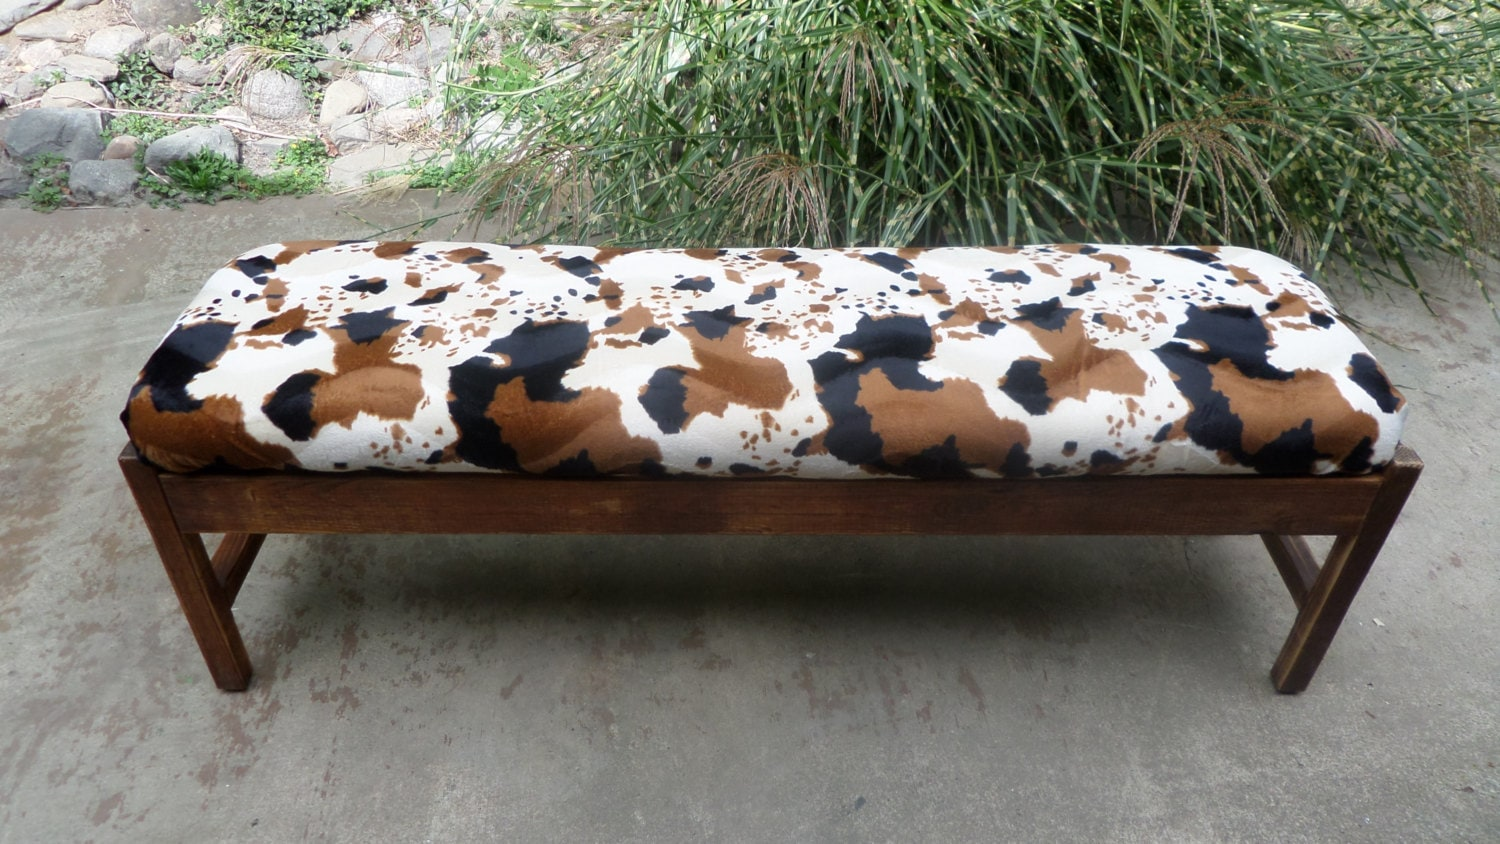 100 Cow Print Bench Bar Stools Hobby Lobby Storage  : ilfullxfull841309876qkh3 from 45.32.79.15 size 1500 x 844 jpeg 362kB